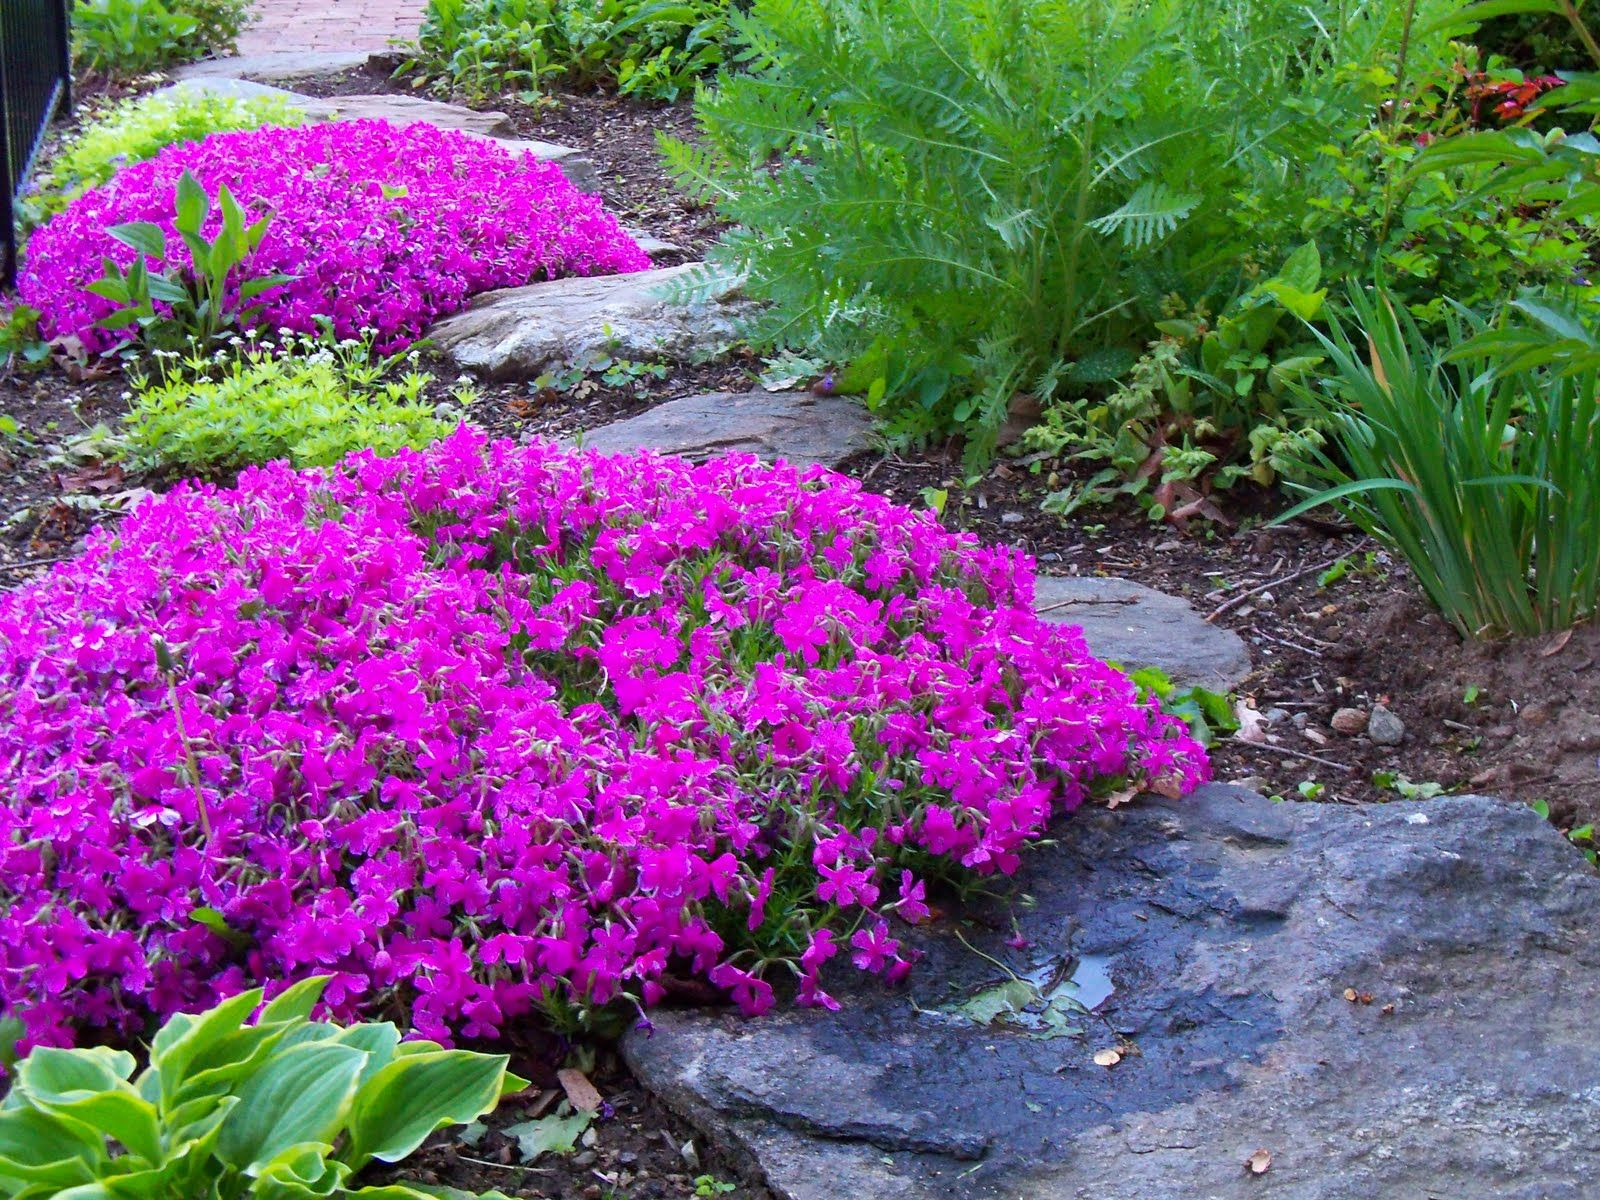 Creeping Phlox Ground Covermma Used To Grow This To Fill In Her